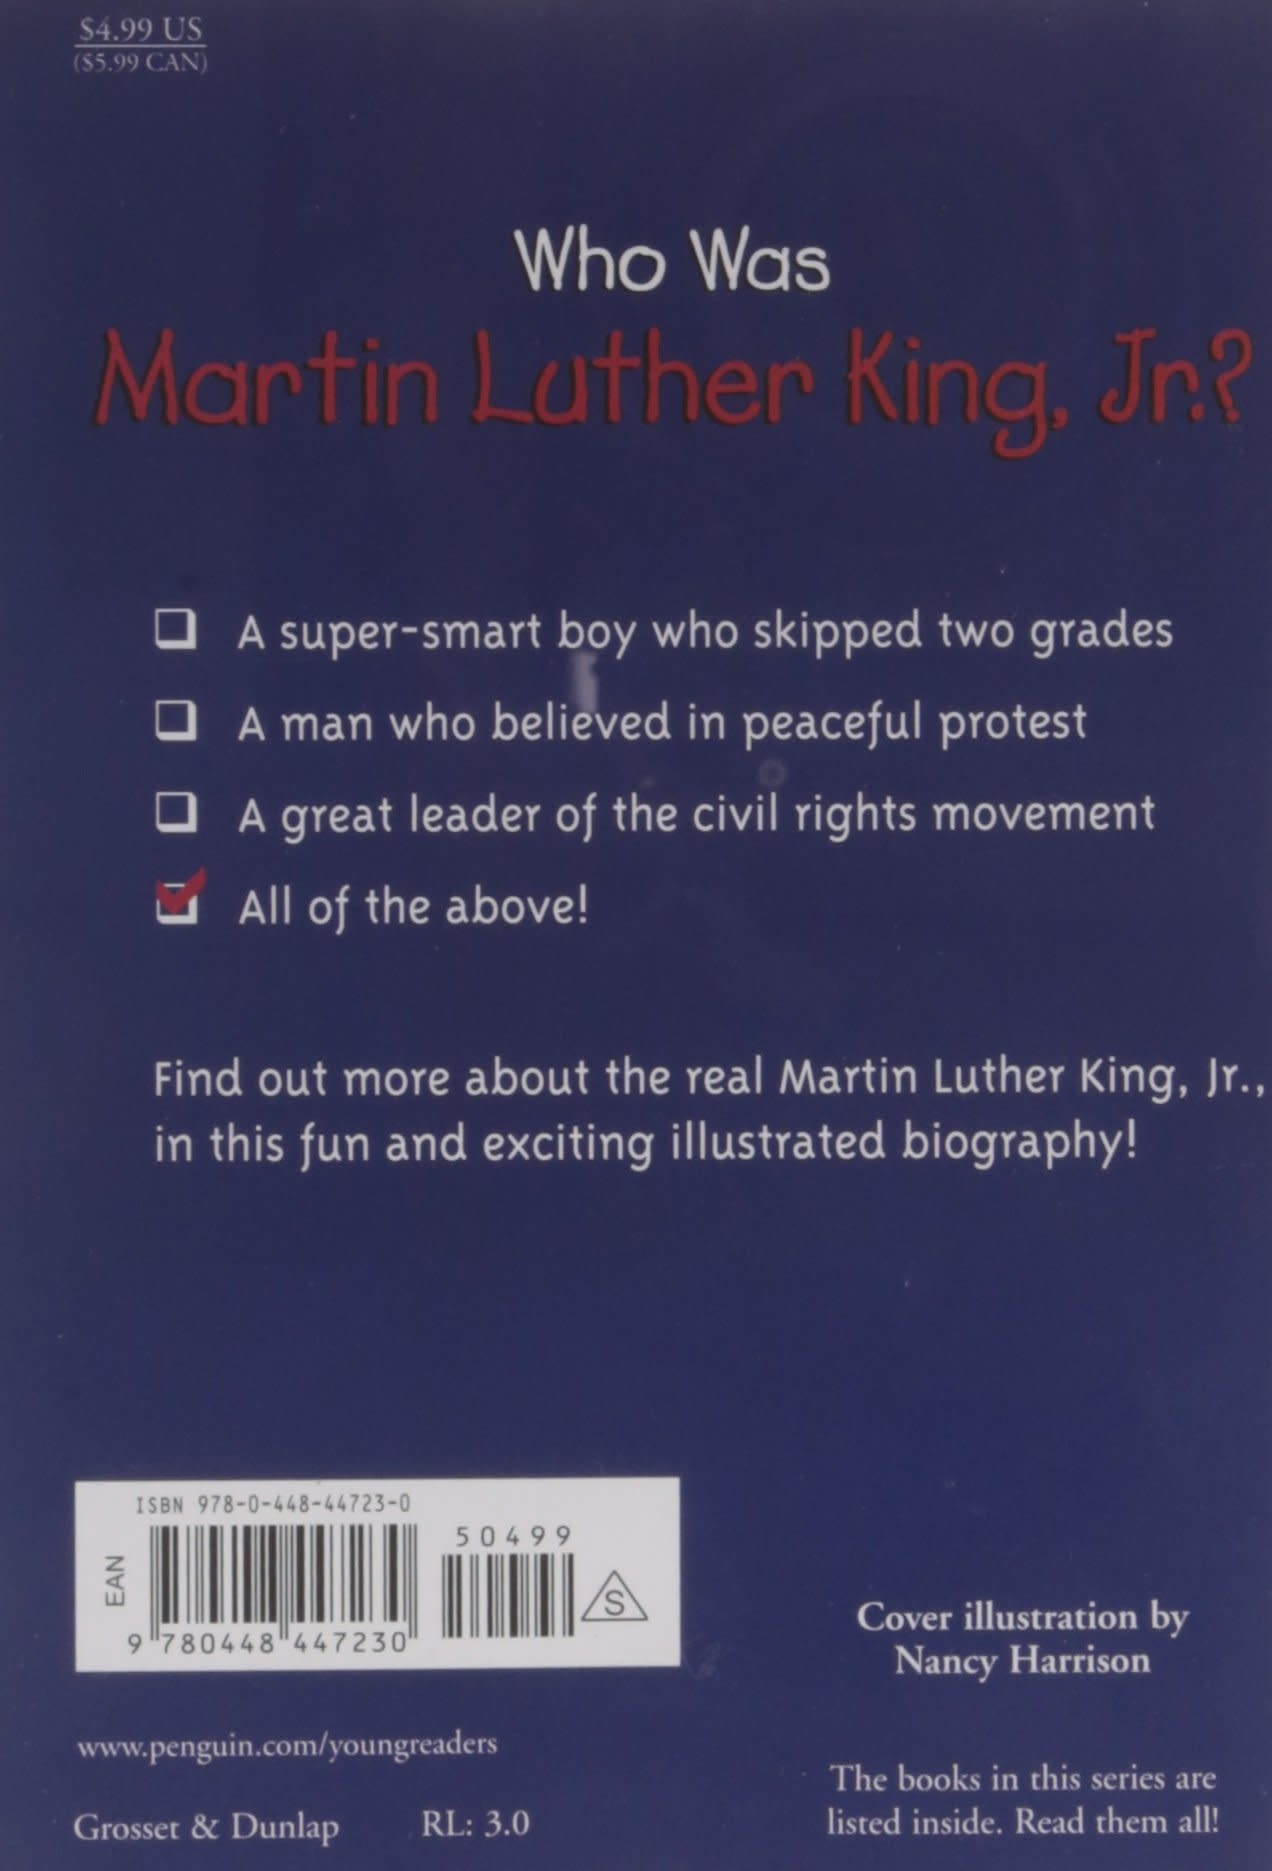 Who Was Martin Luther King, Jr.? Paperback Book